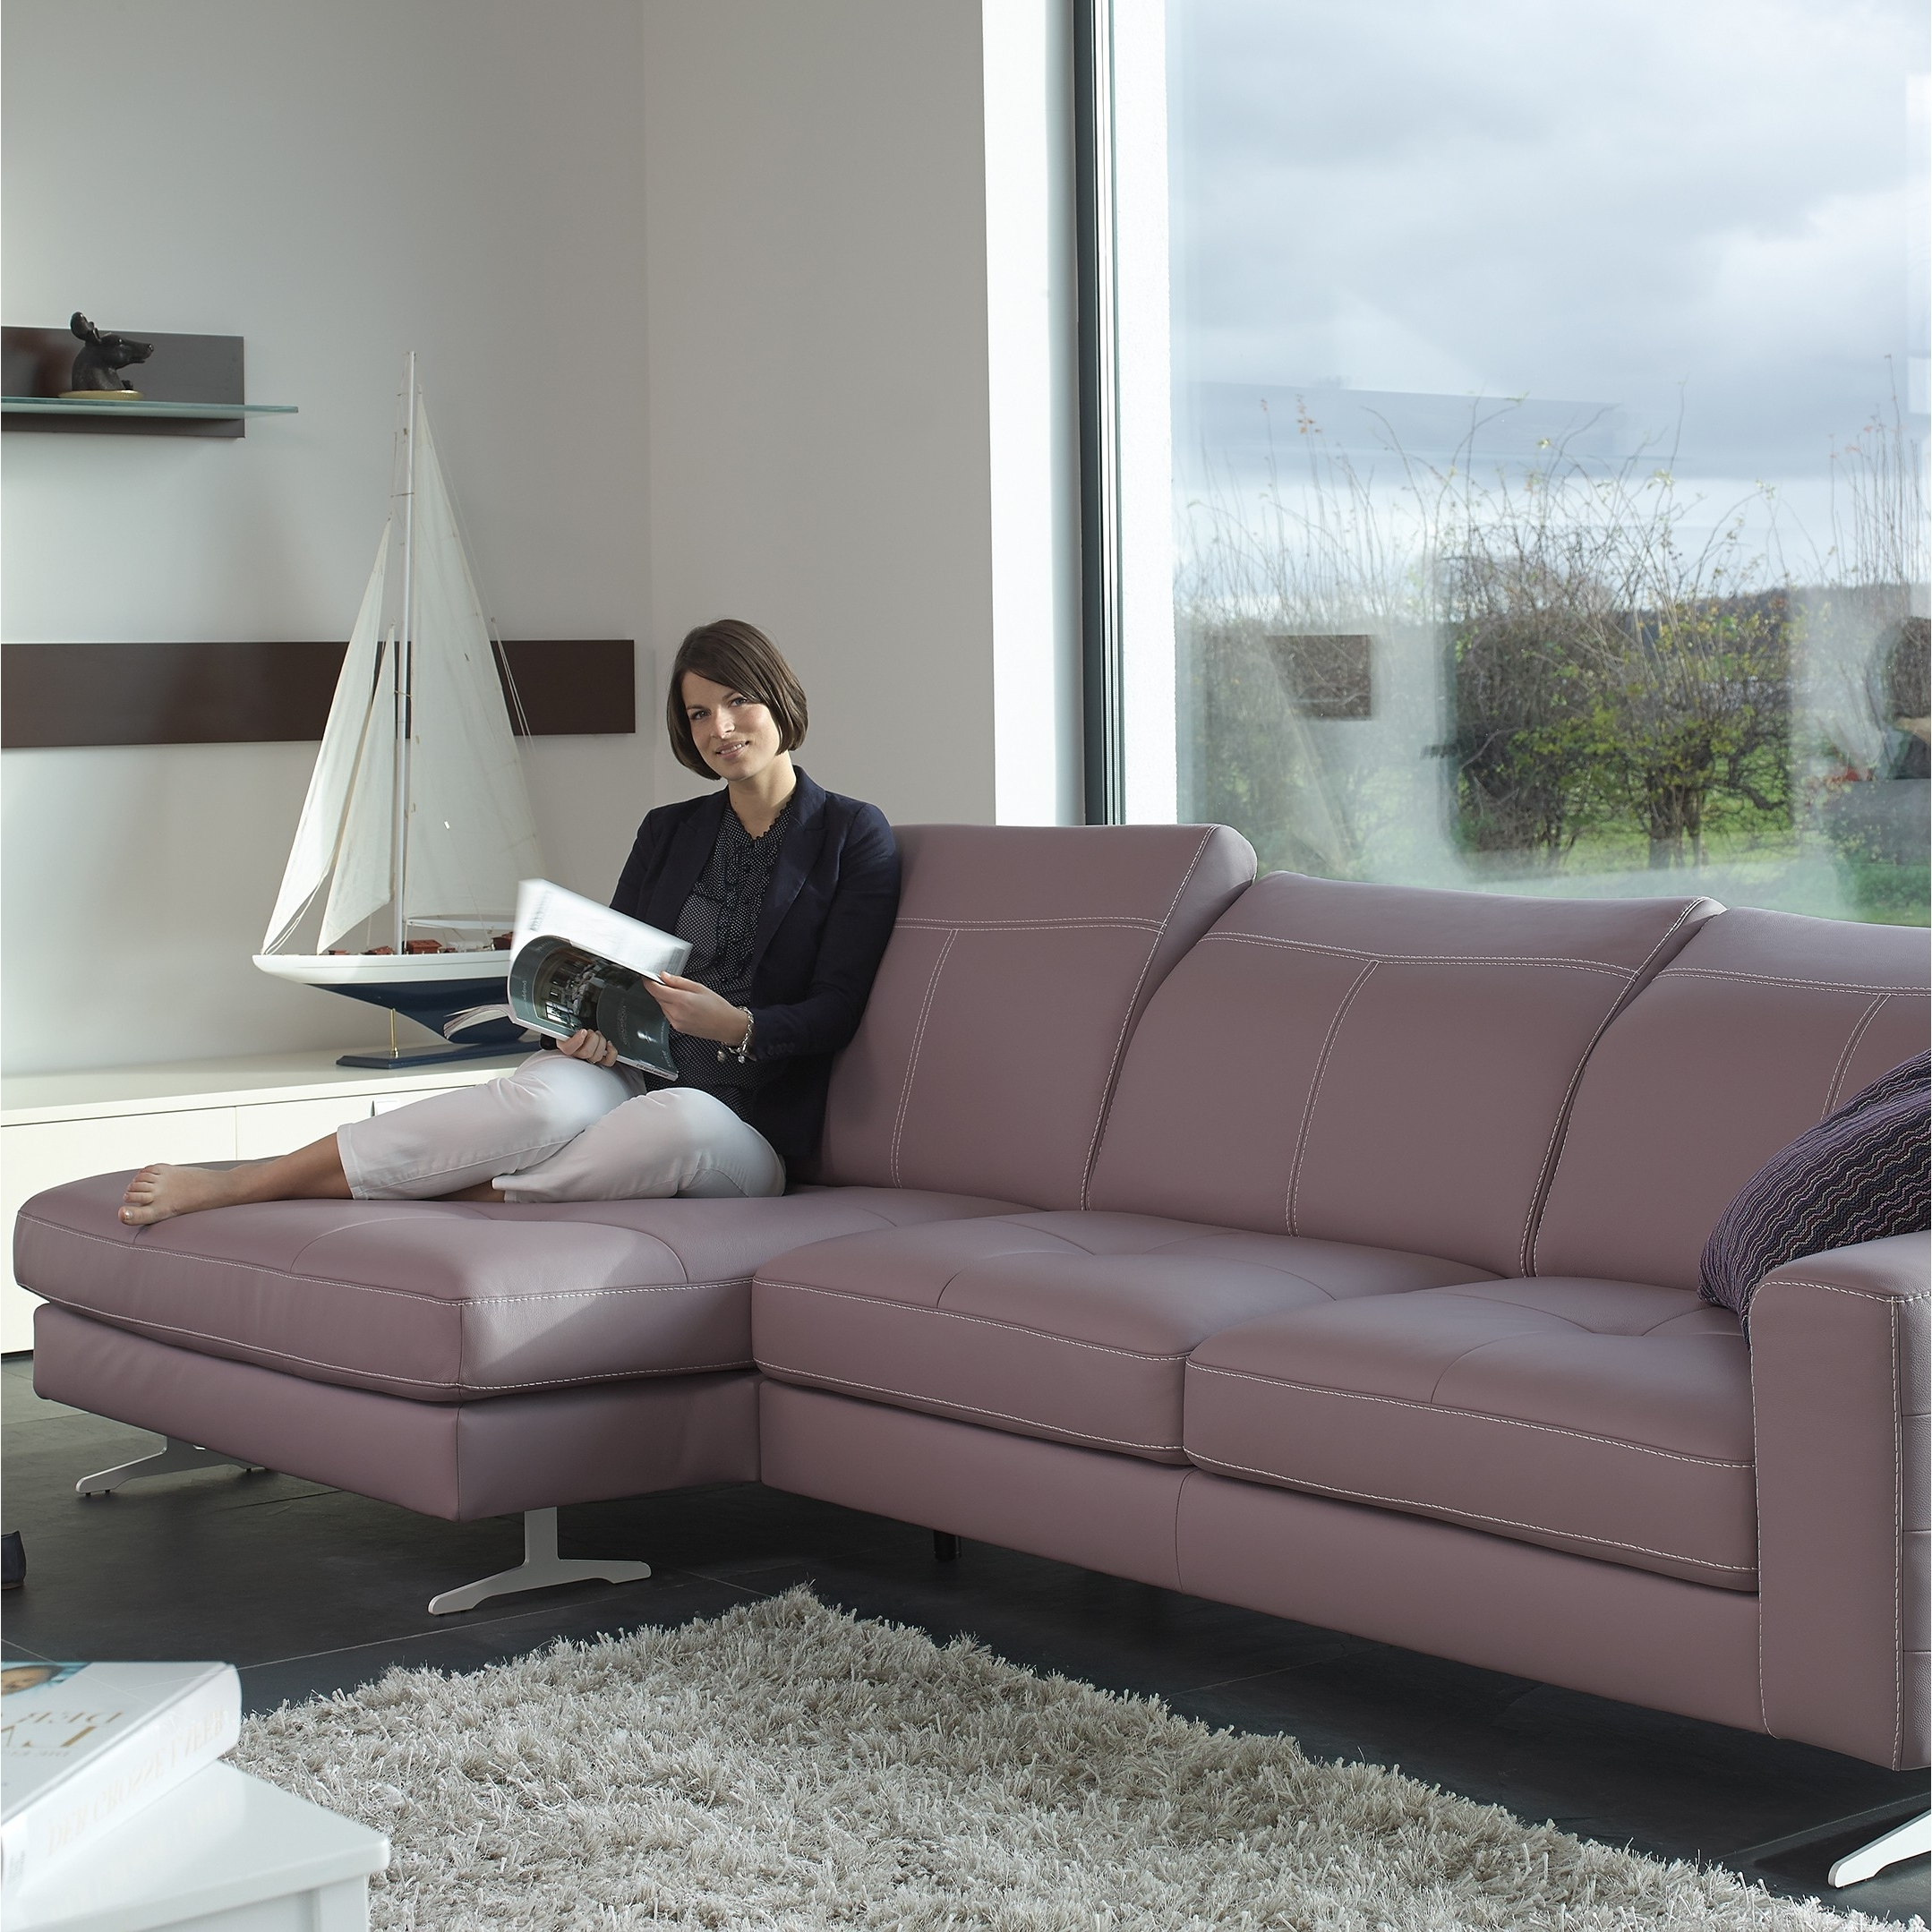 Widely Used Nh Sectional Sofas For Samoa Sectional Sofa, Rom Belgium – Italmoda Furniture Store (View 2 of 15)